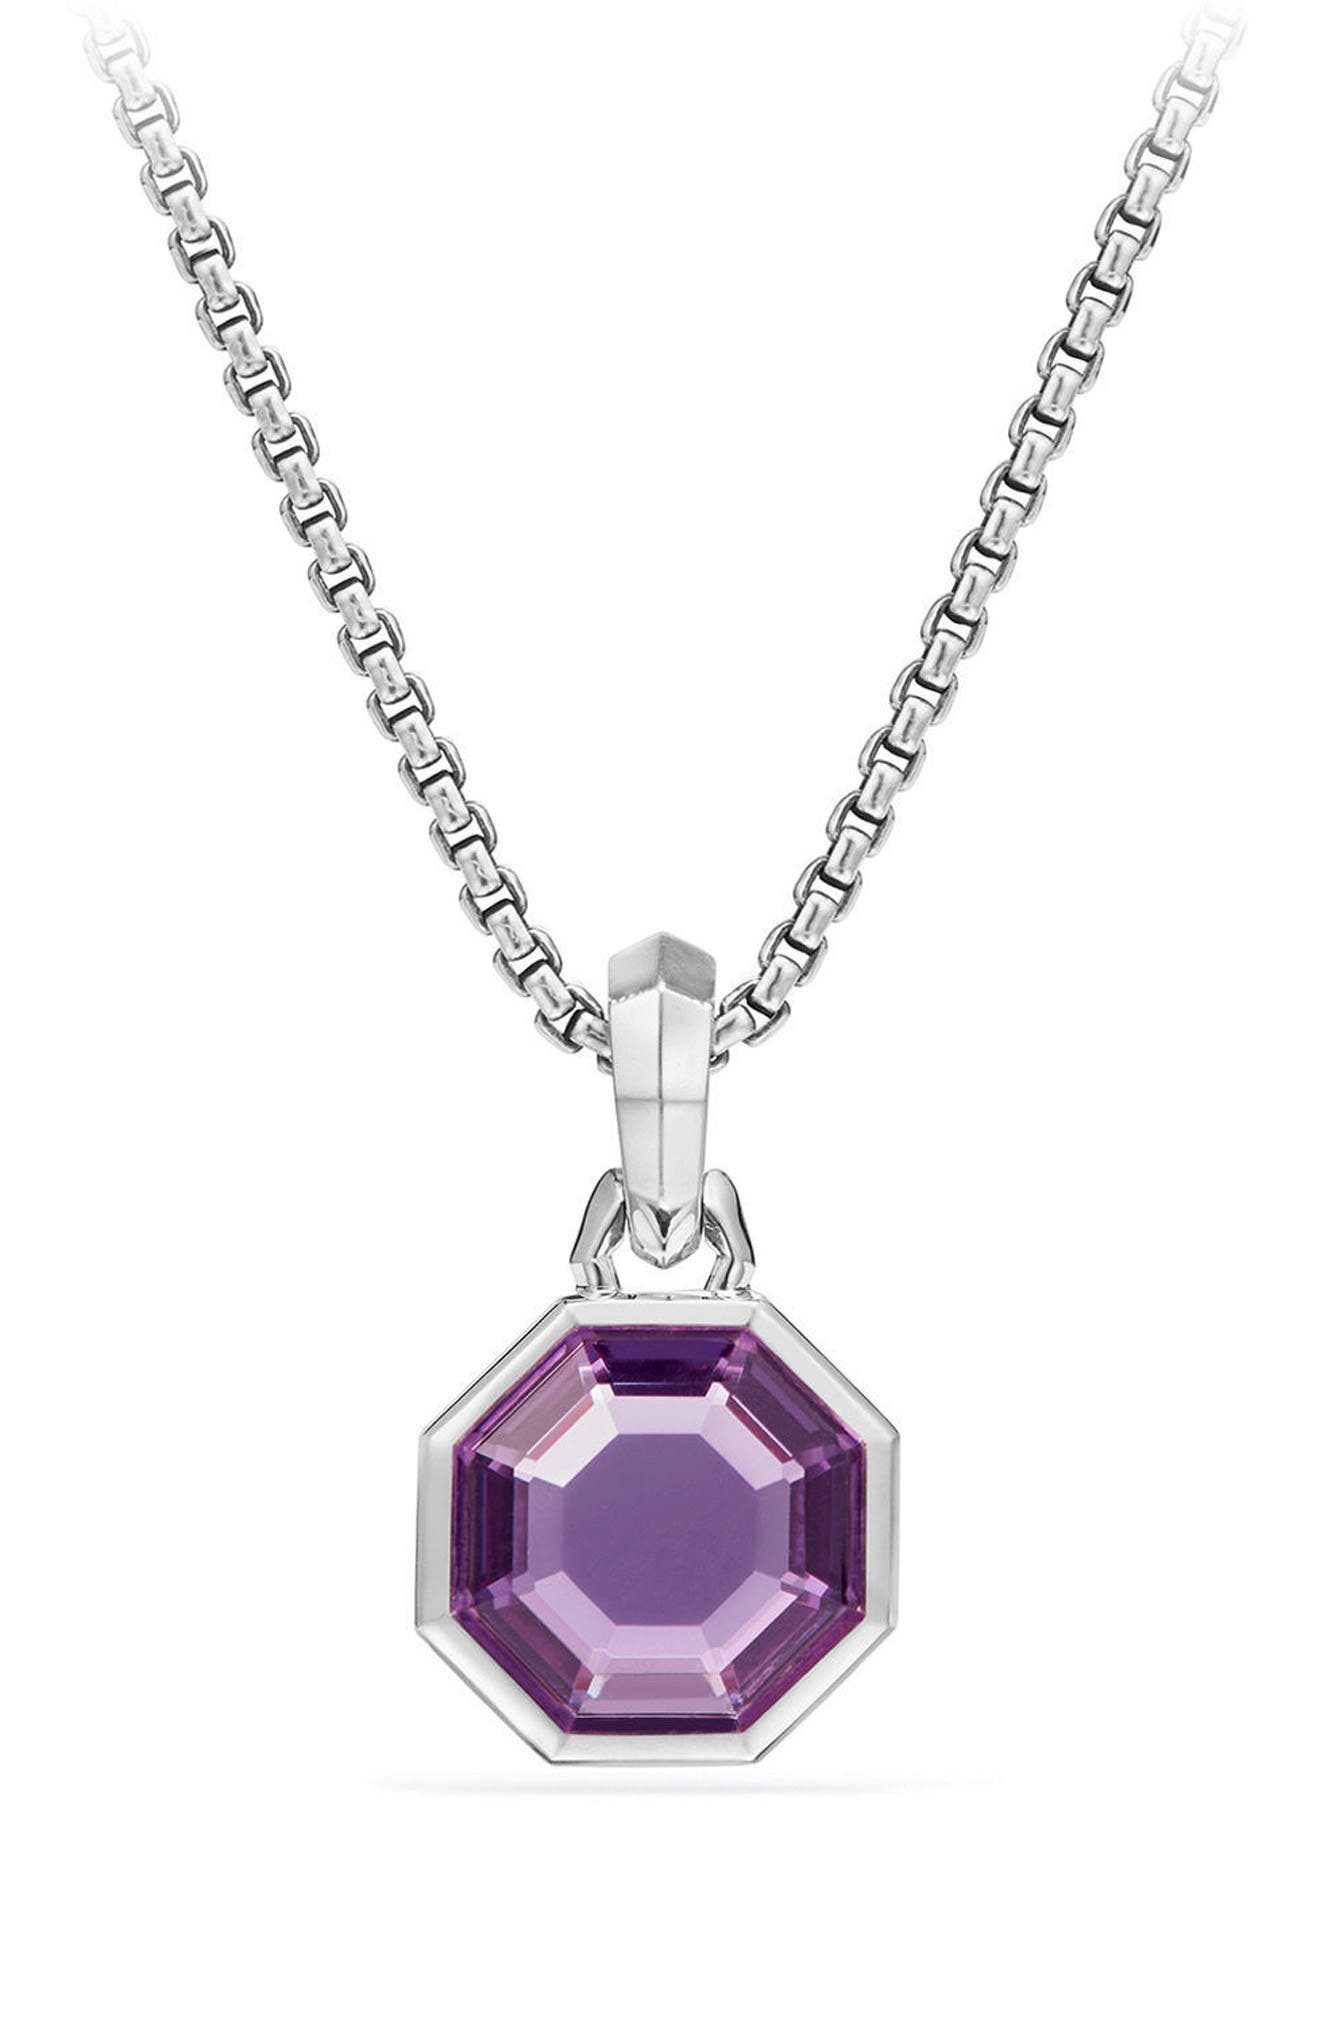 Cable Collectibles Octagon Cut Semiprecious Stone Amulet,                         Main,                         color, AMETHYST